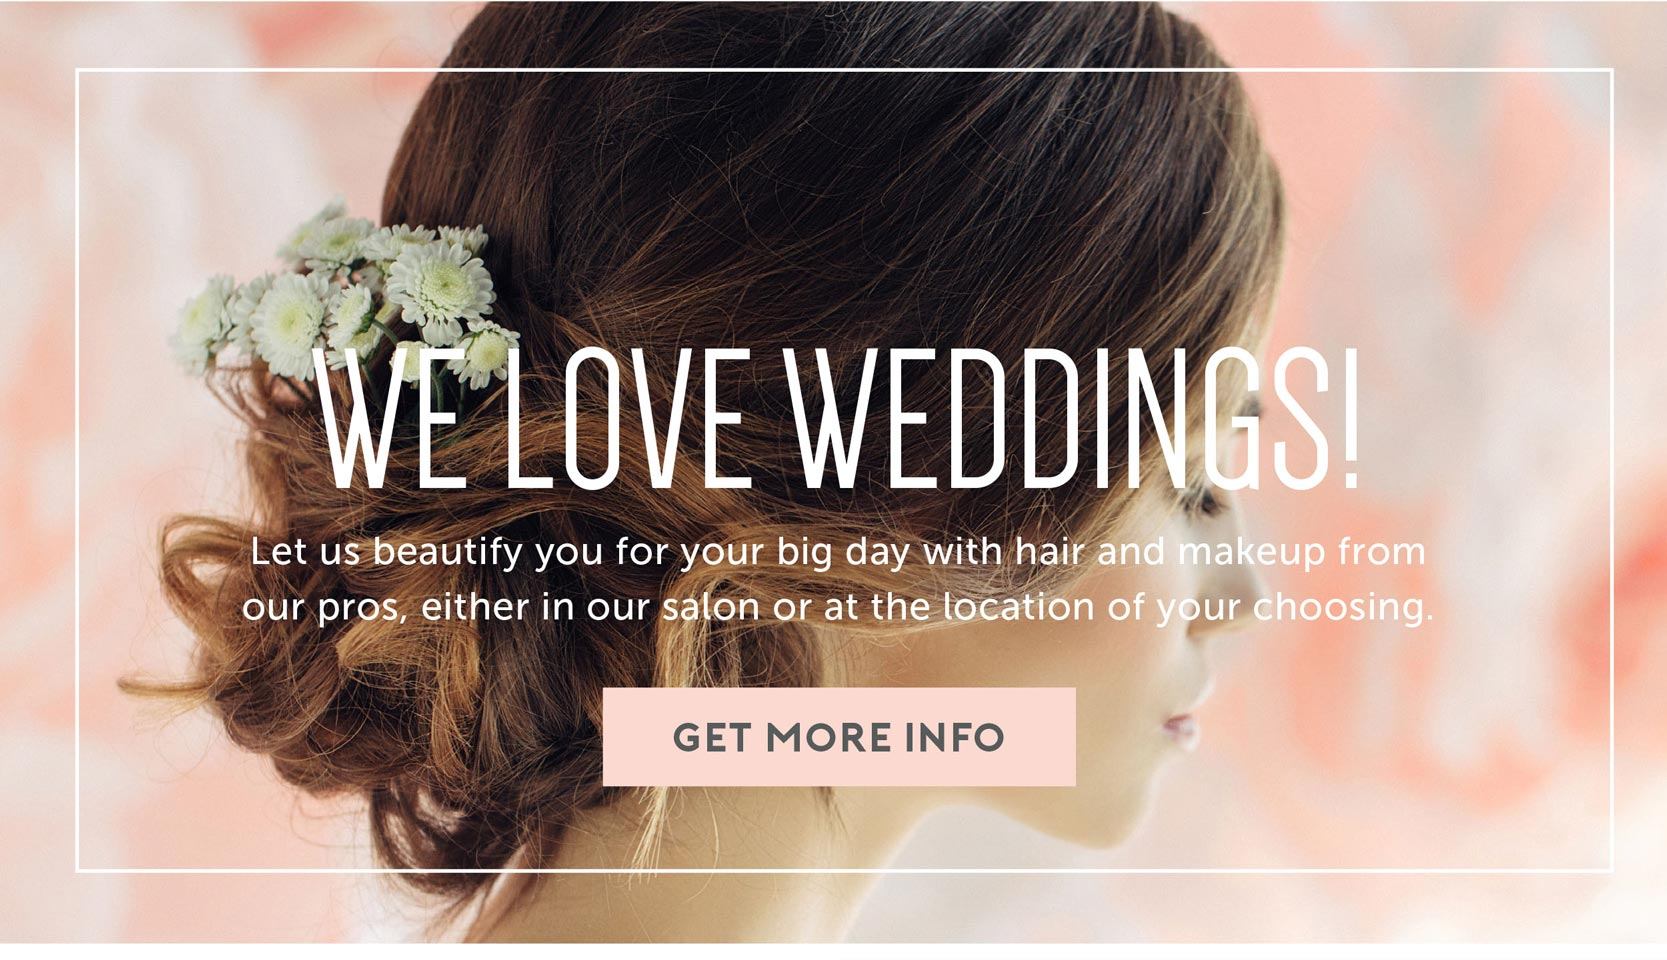 We love weddings! Let us beautify you for your big day with hair and makeup from our pros.